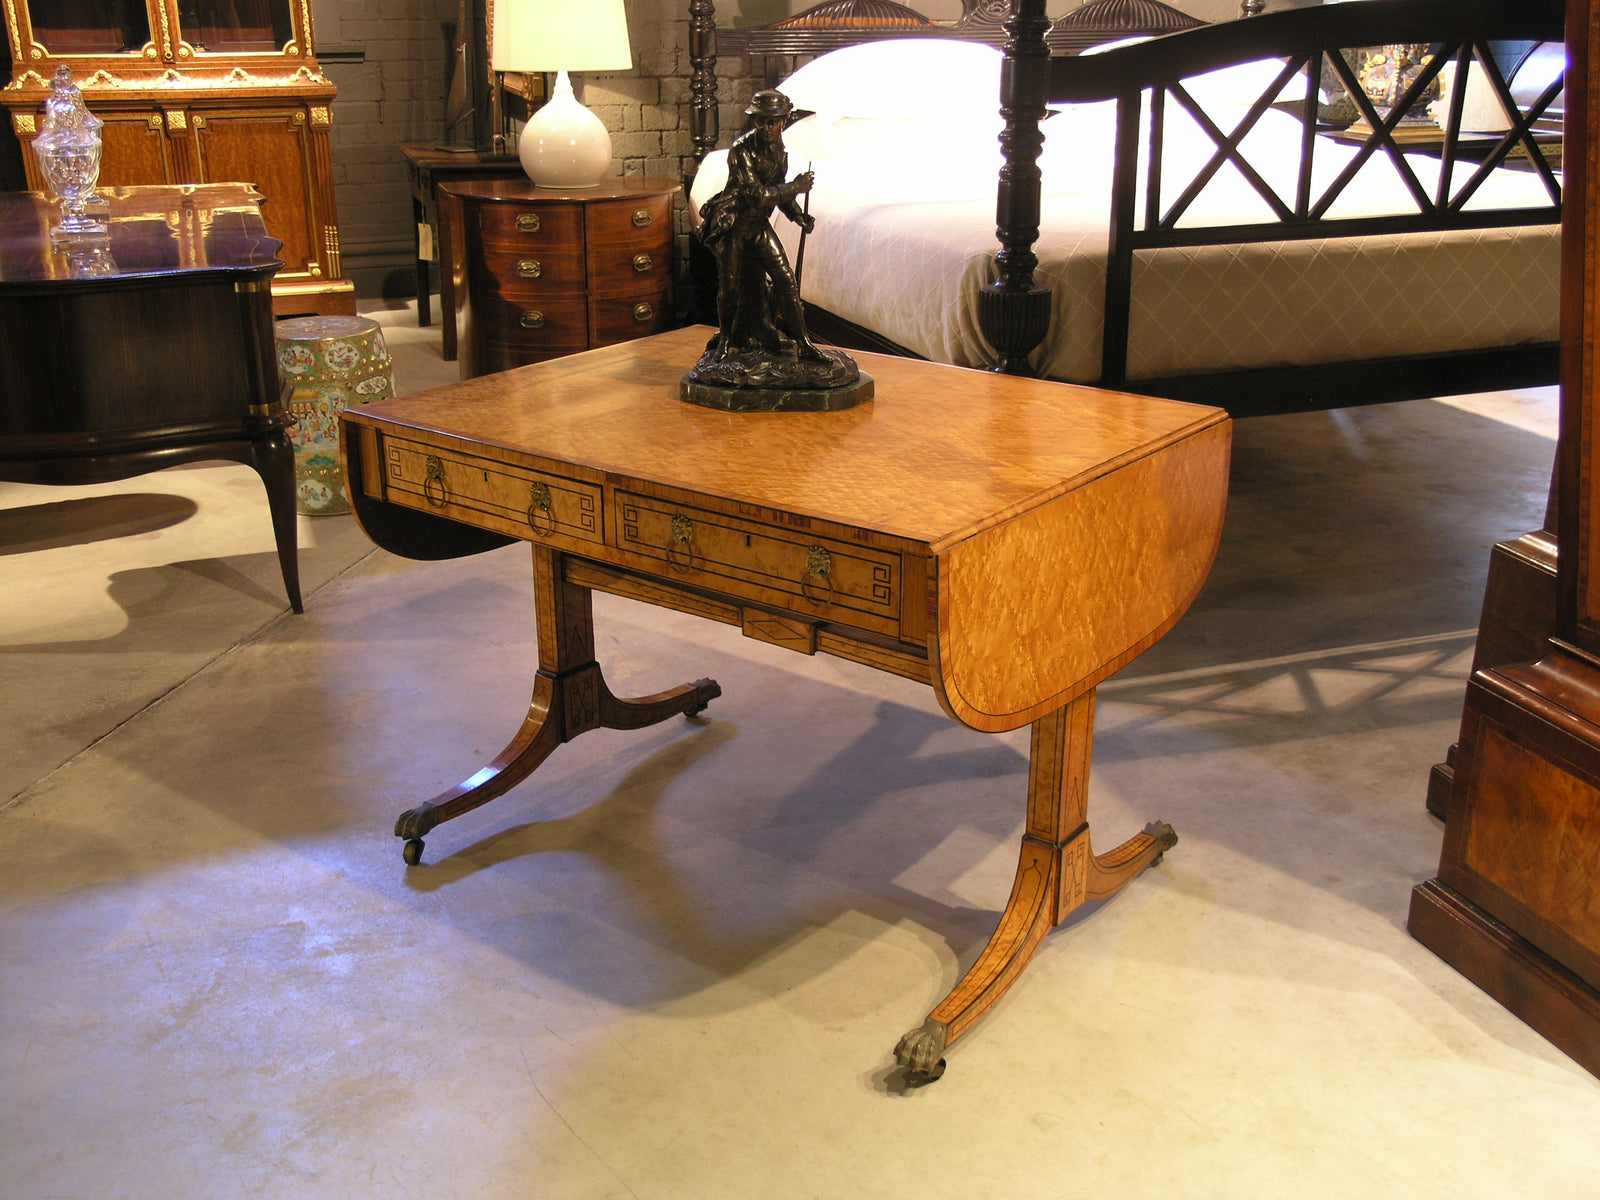 Regency period Sofa Table